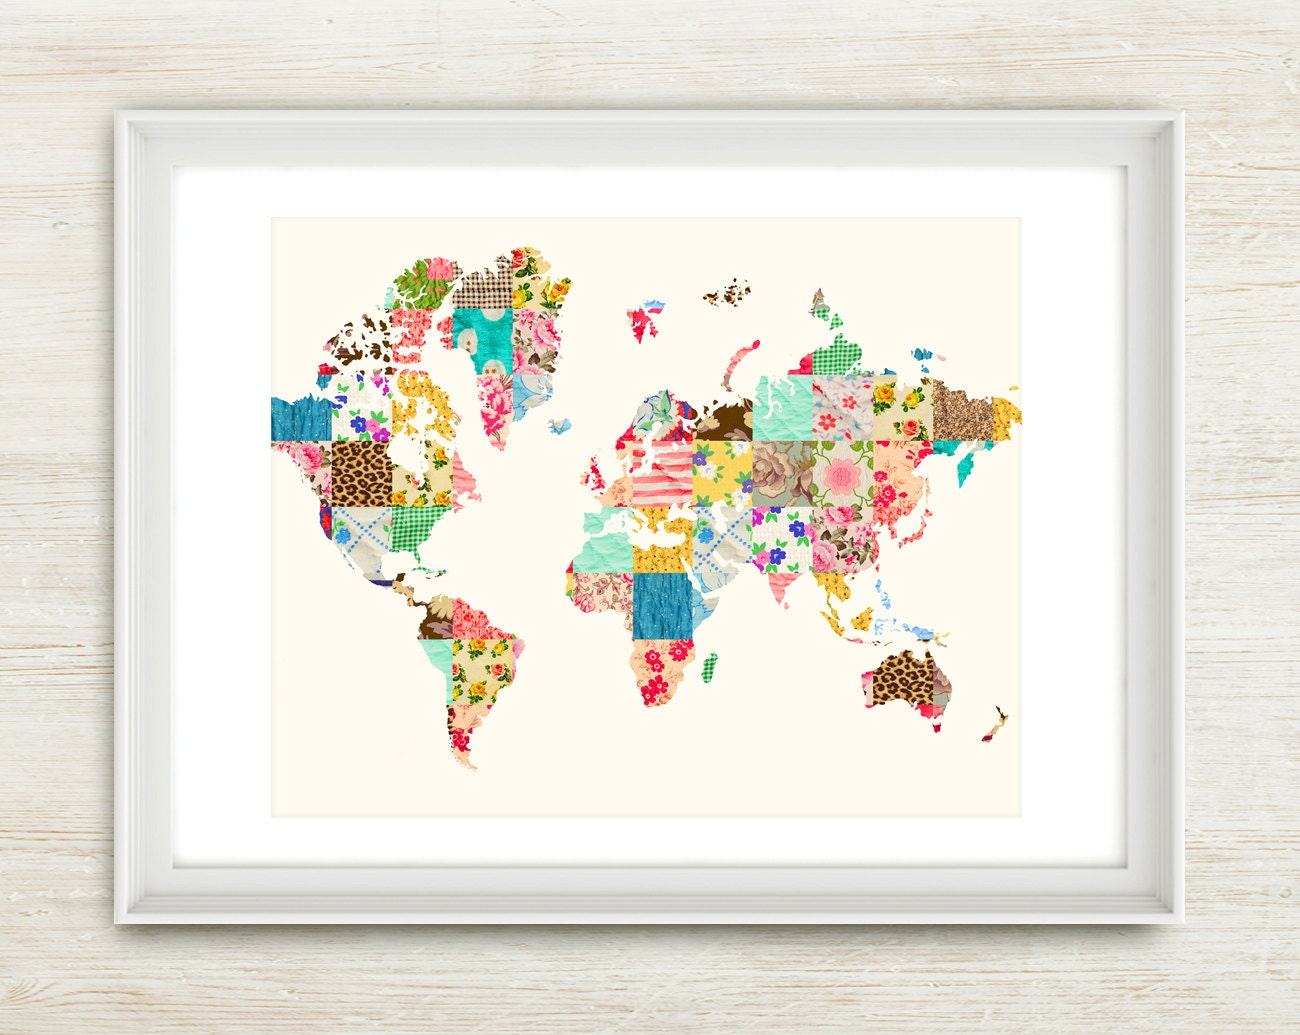 Be An Explorer of The World - 8x10 inches on A4. Inspiring world travel map, quilt, patchwork, vintage, quote art print. - mercimerci